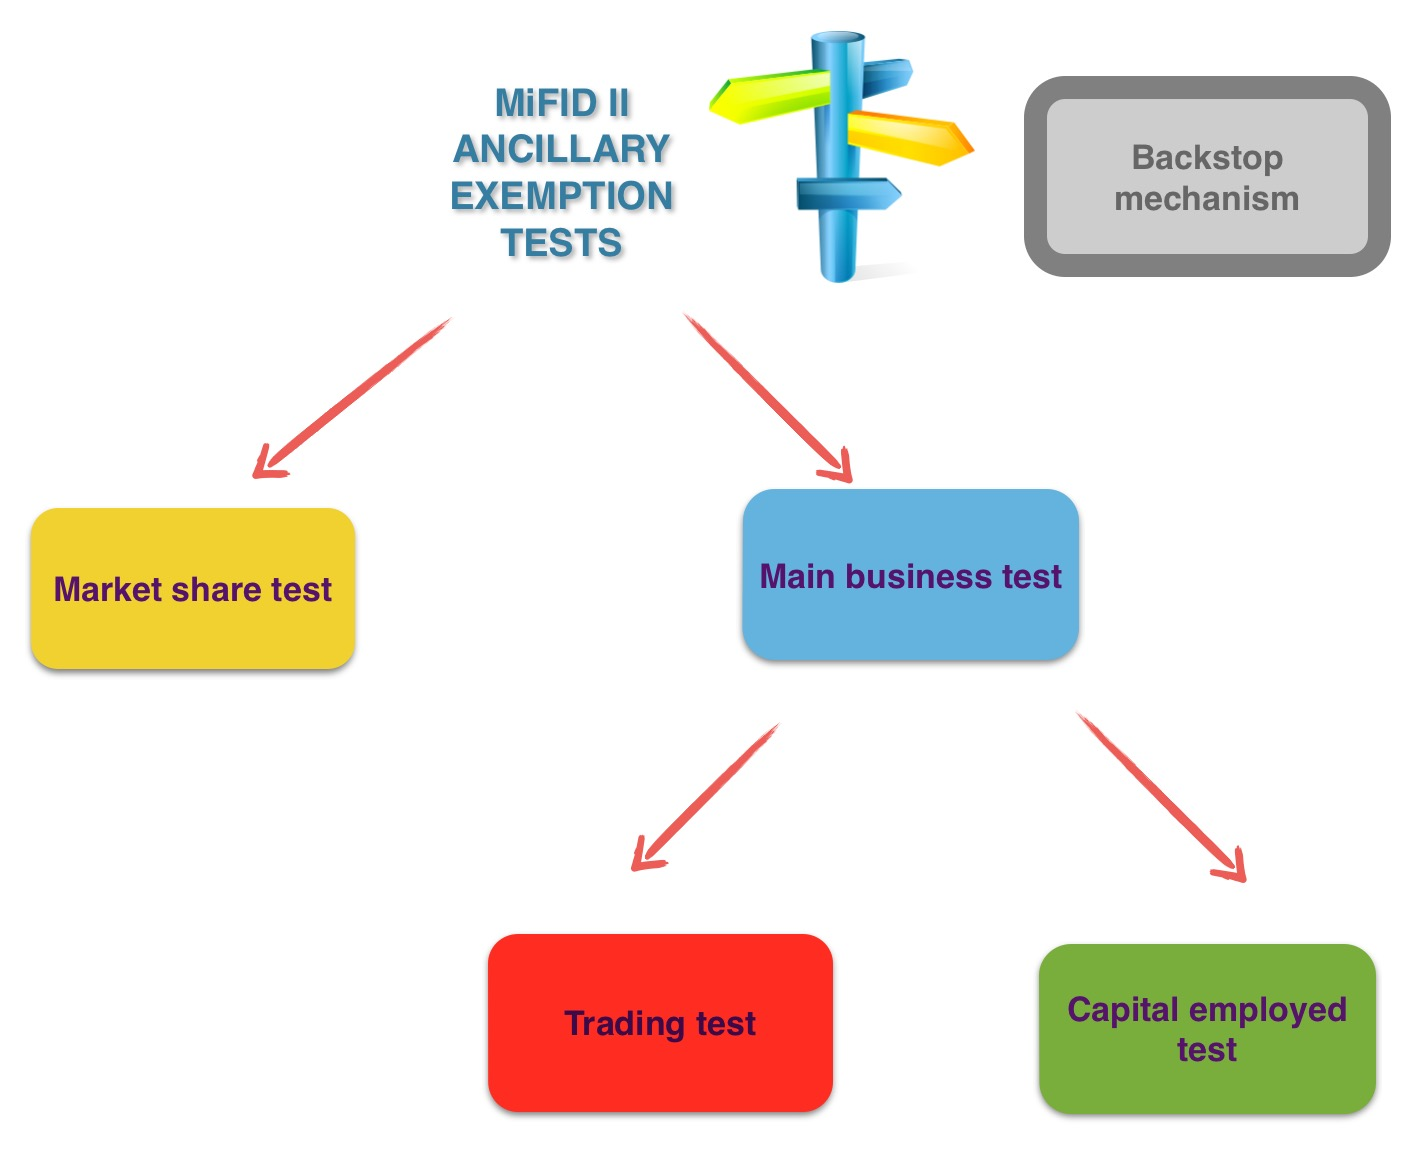 Mifid2 ancillary exemption tests structure